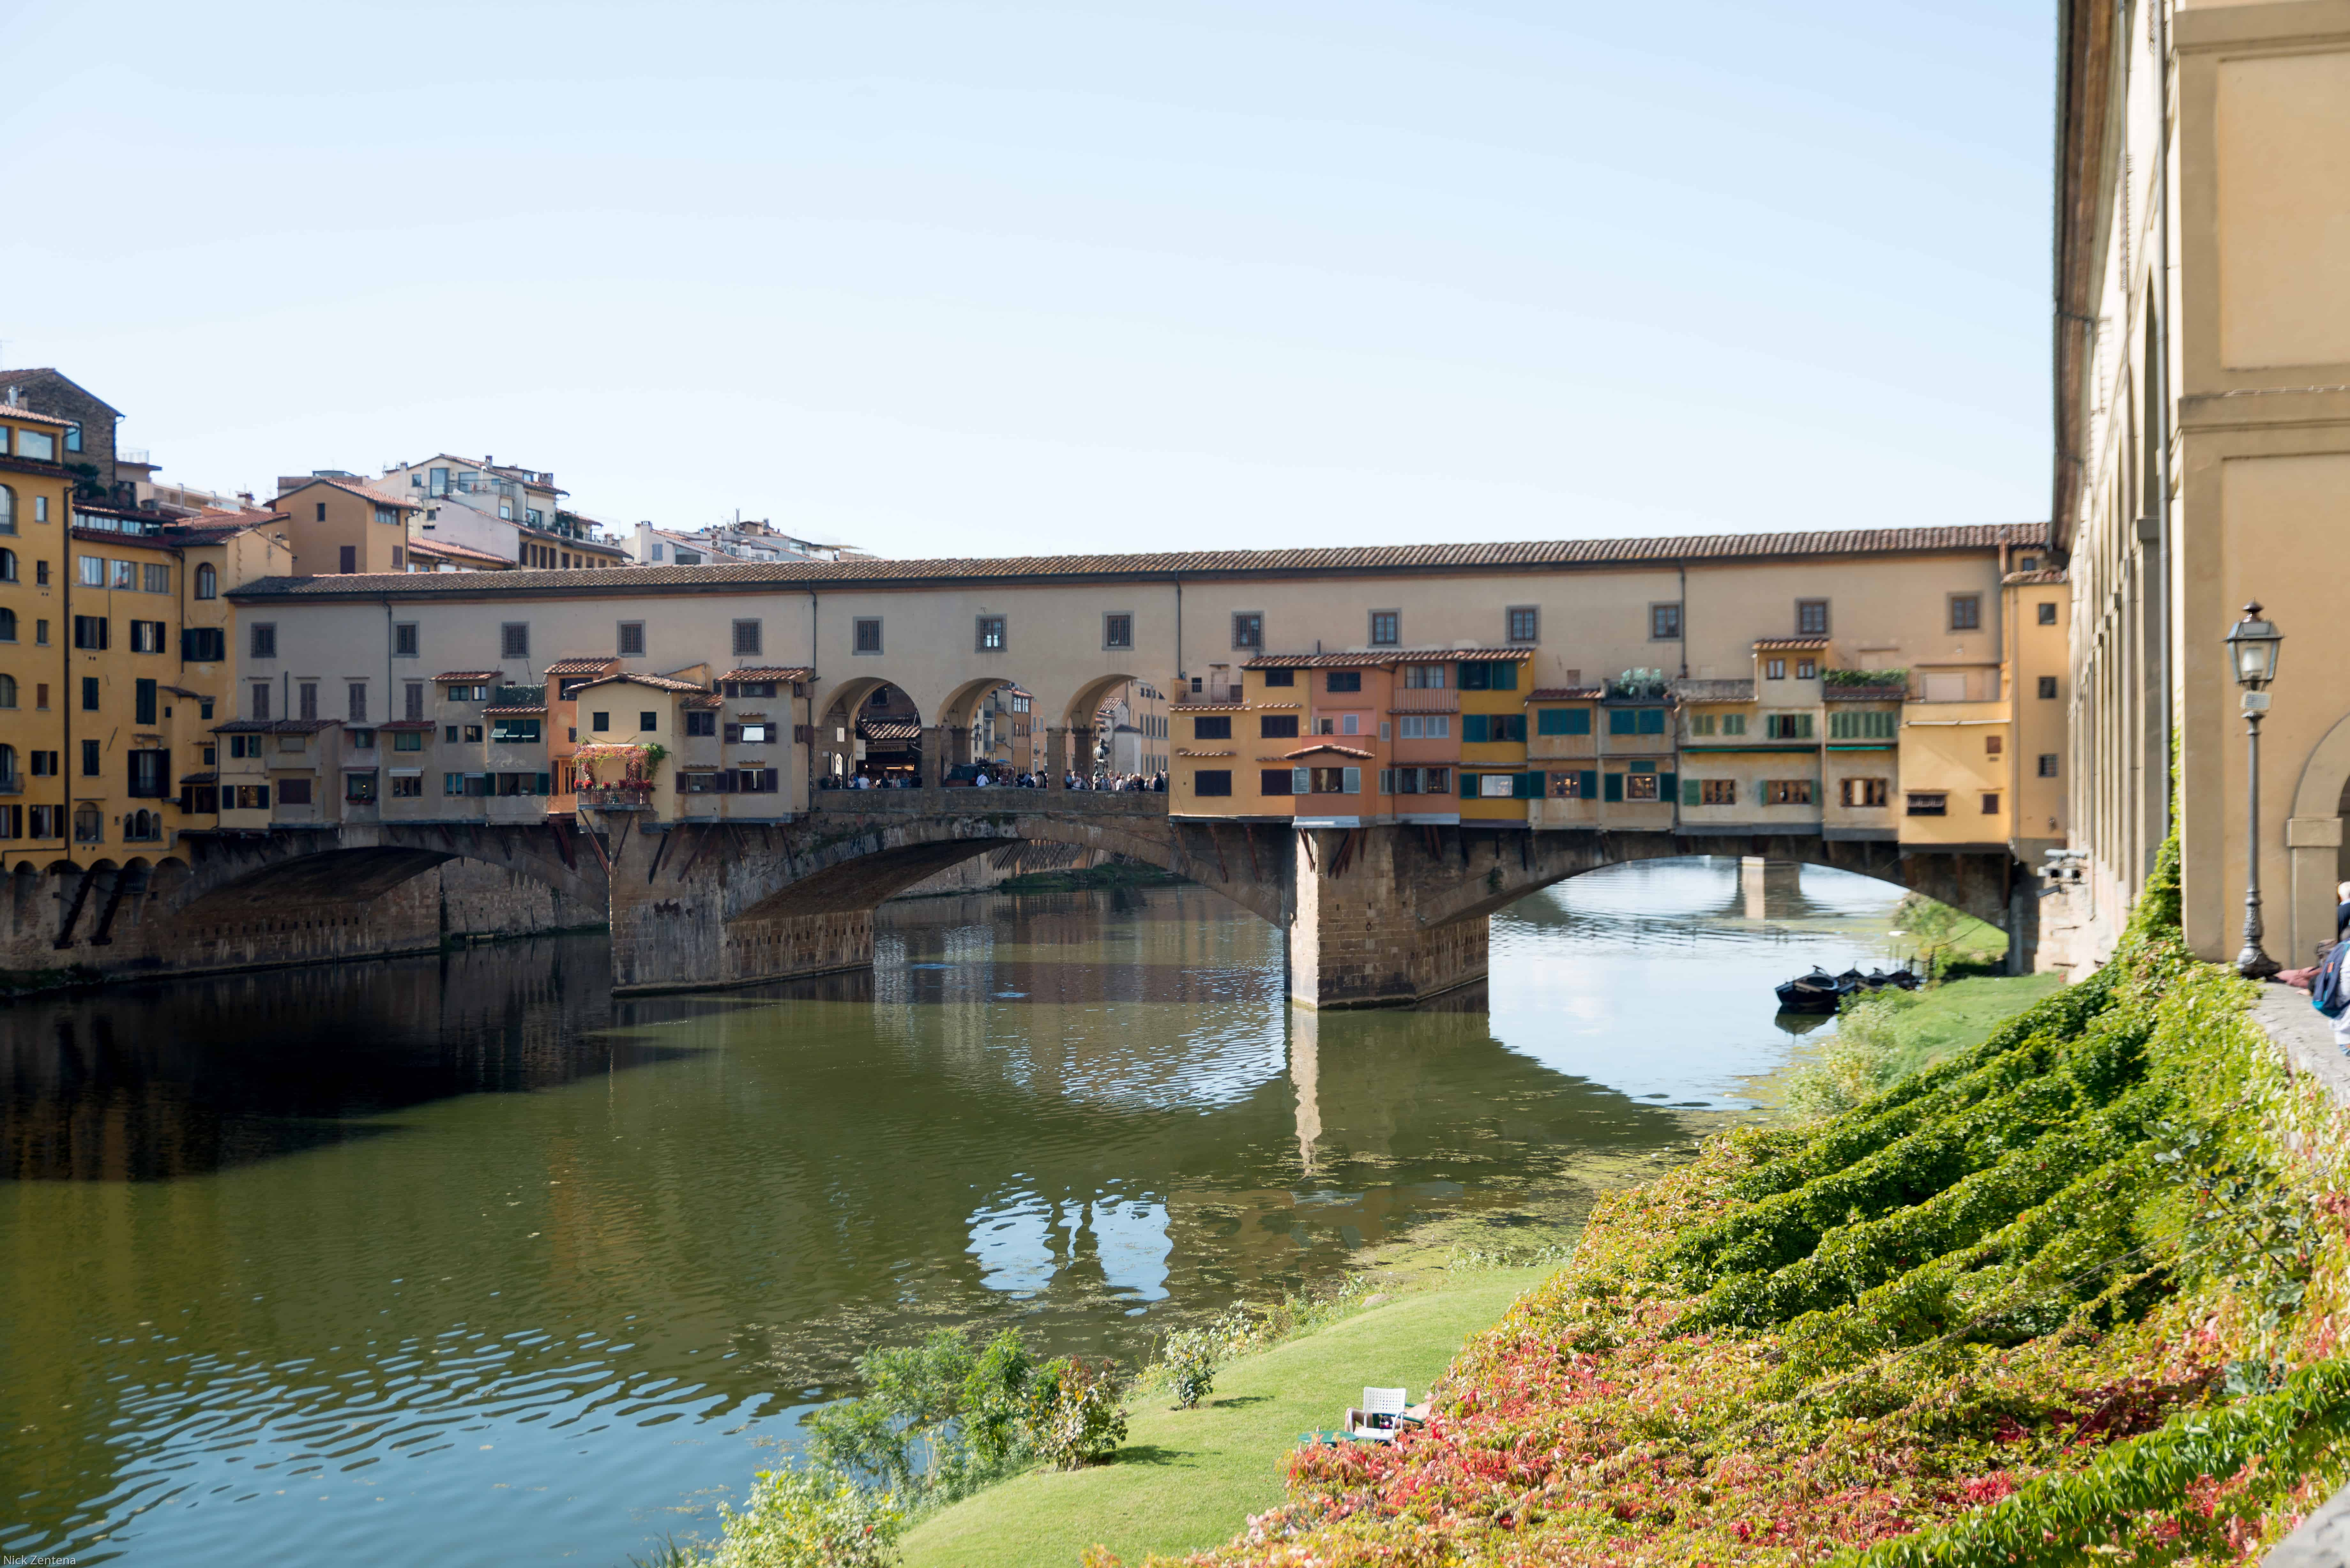 Bridge over the Arno river Florence tuscany Italy